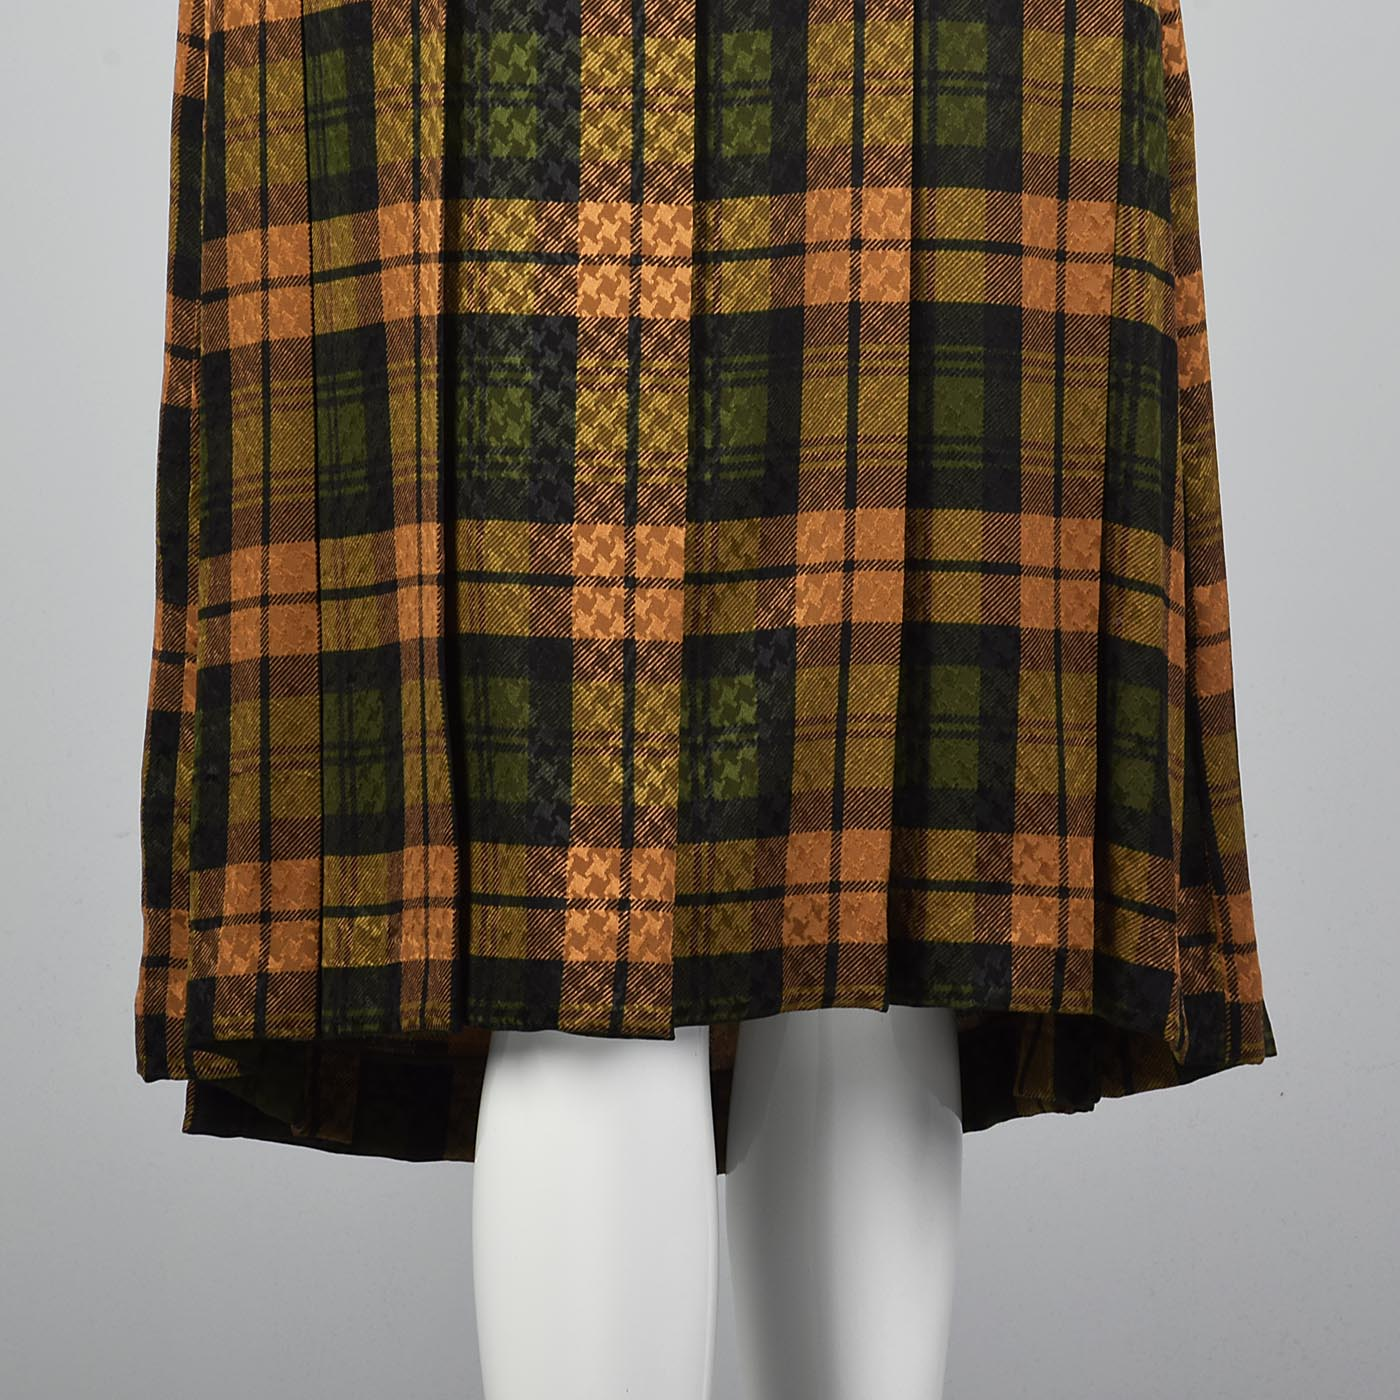 Galanos Pleated Silk Dress in Plaid with Bishop Sleeves